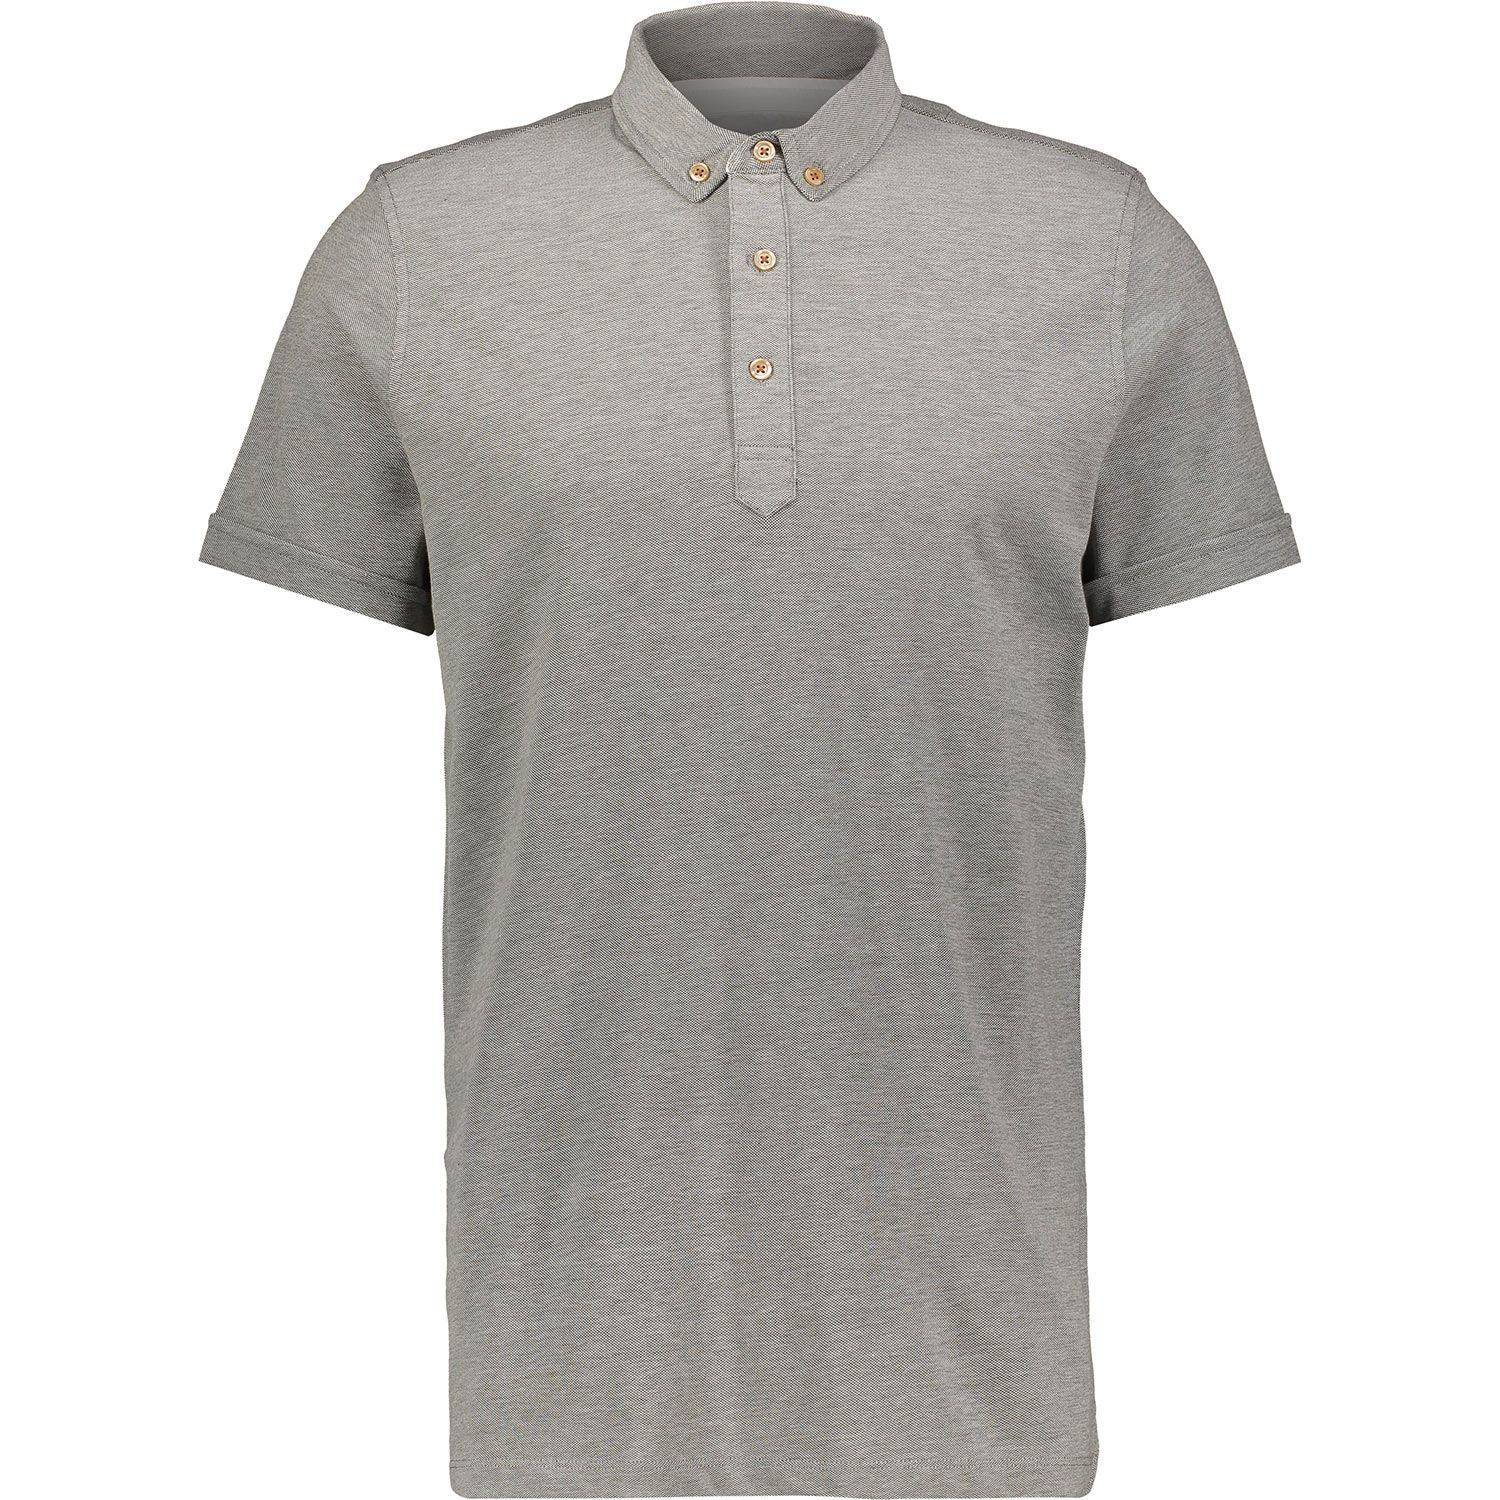 81ad764244 ... reduced common people light grey pique polo shirt tk maxx 2879a 58586  ...